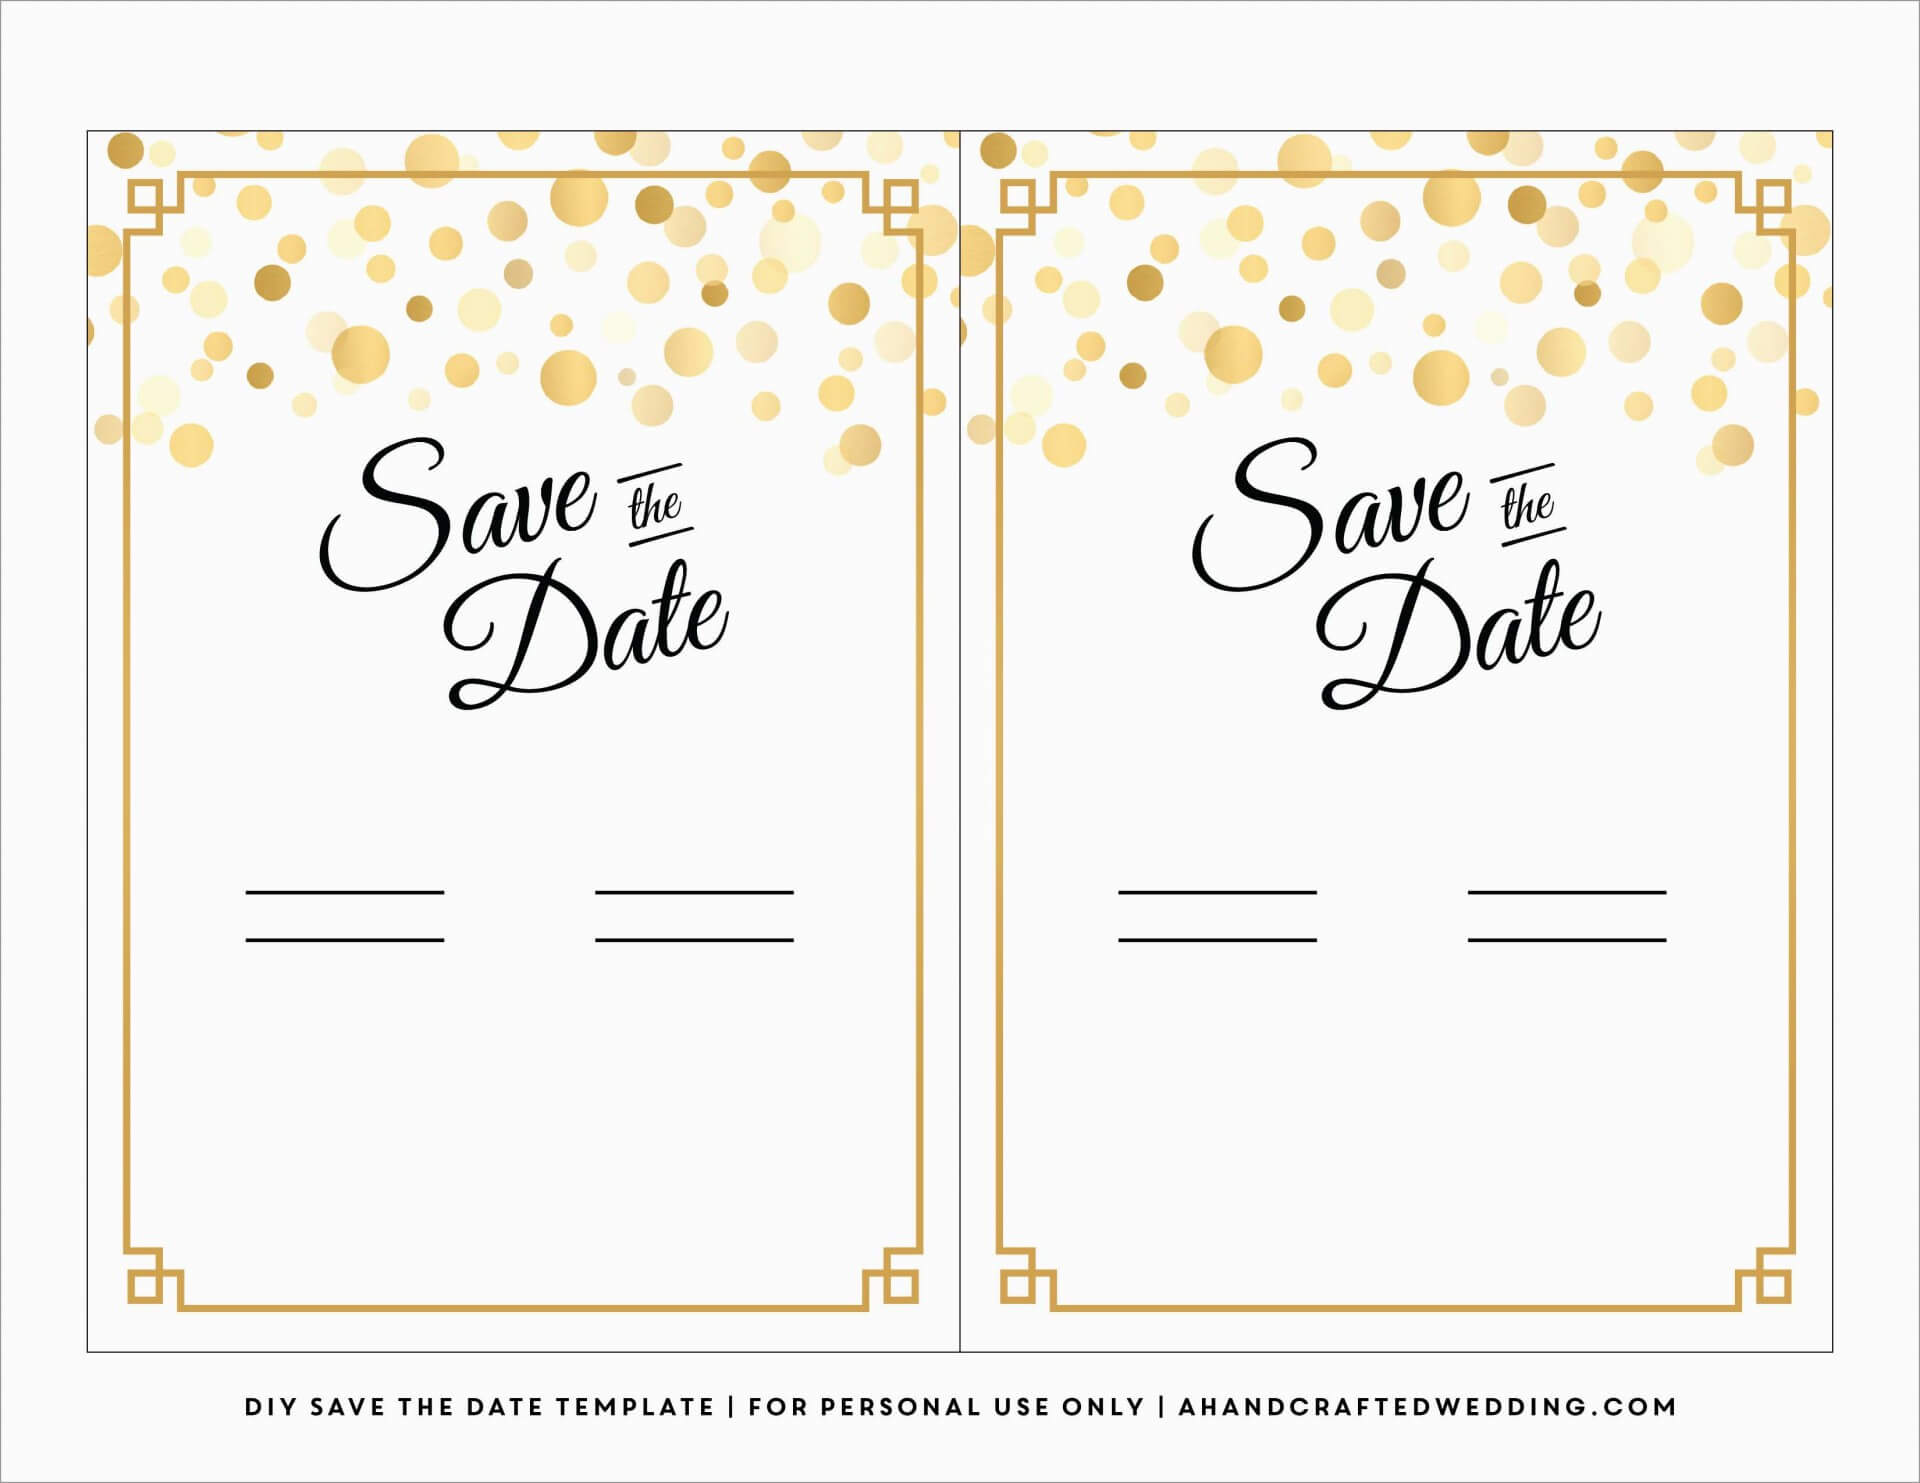 002 Save The Date Templates Word Free For New Dates Of With Regard To Save The Date Templates Word